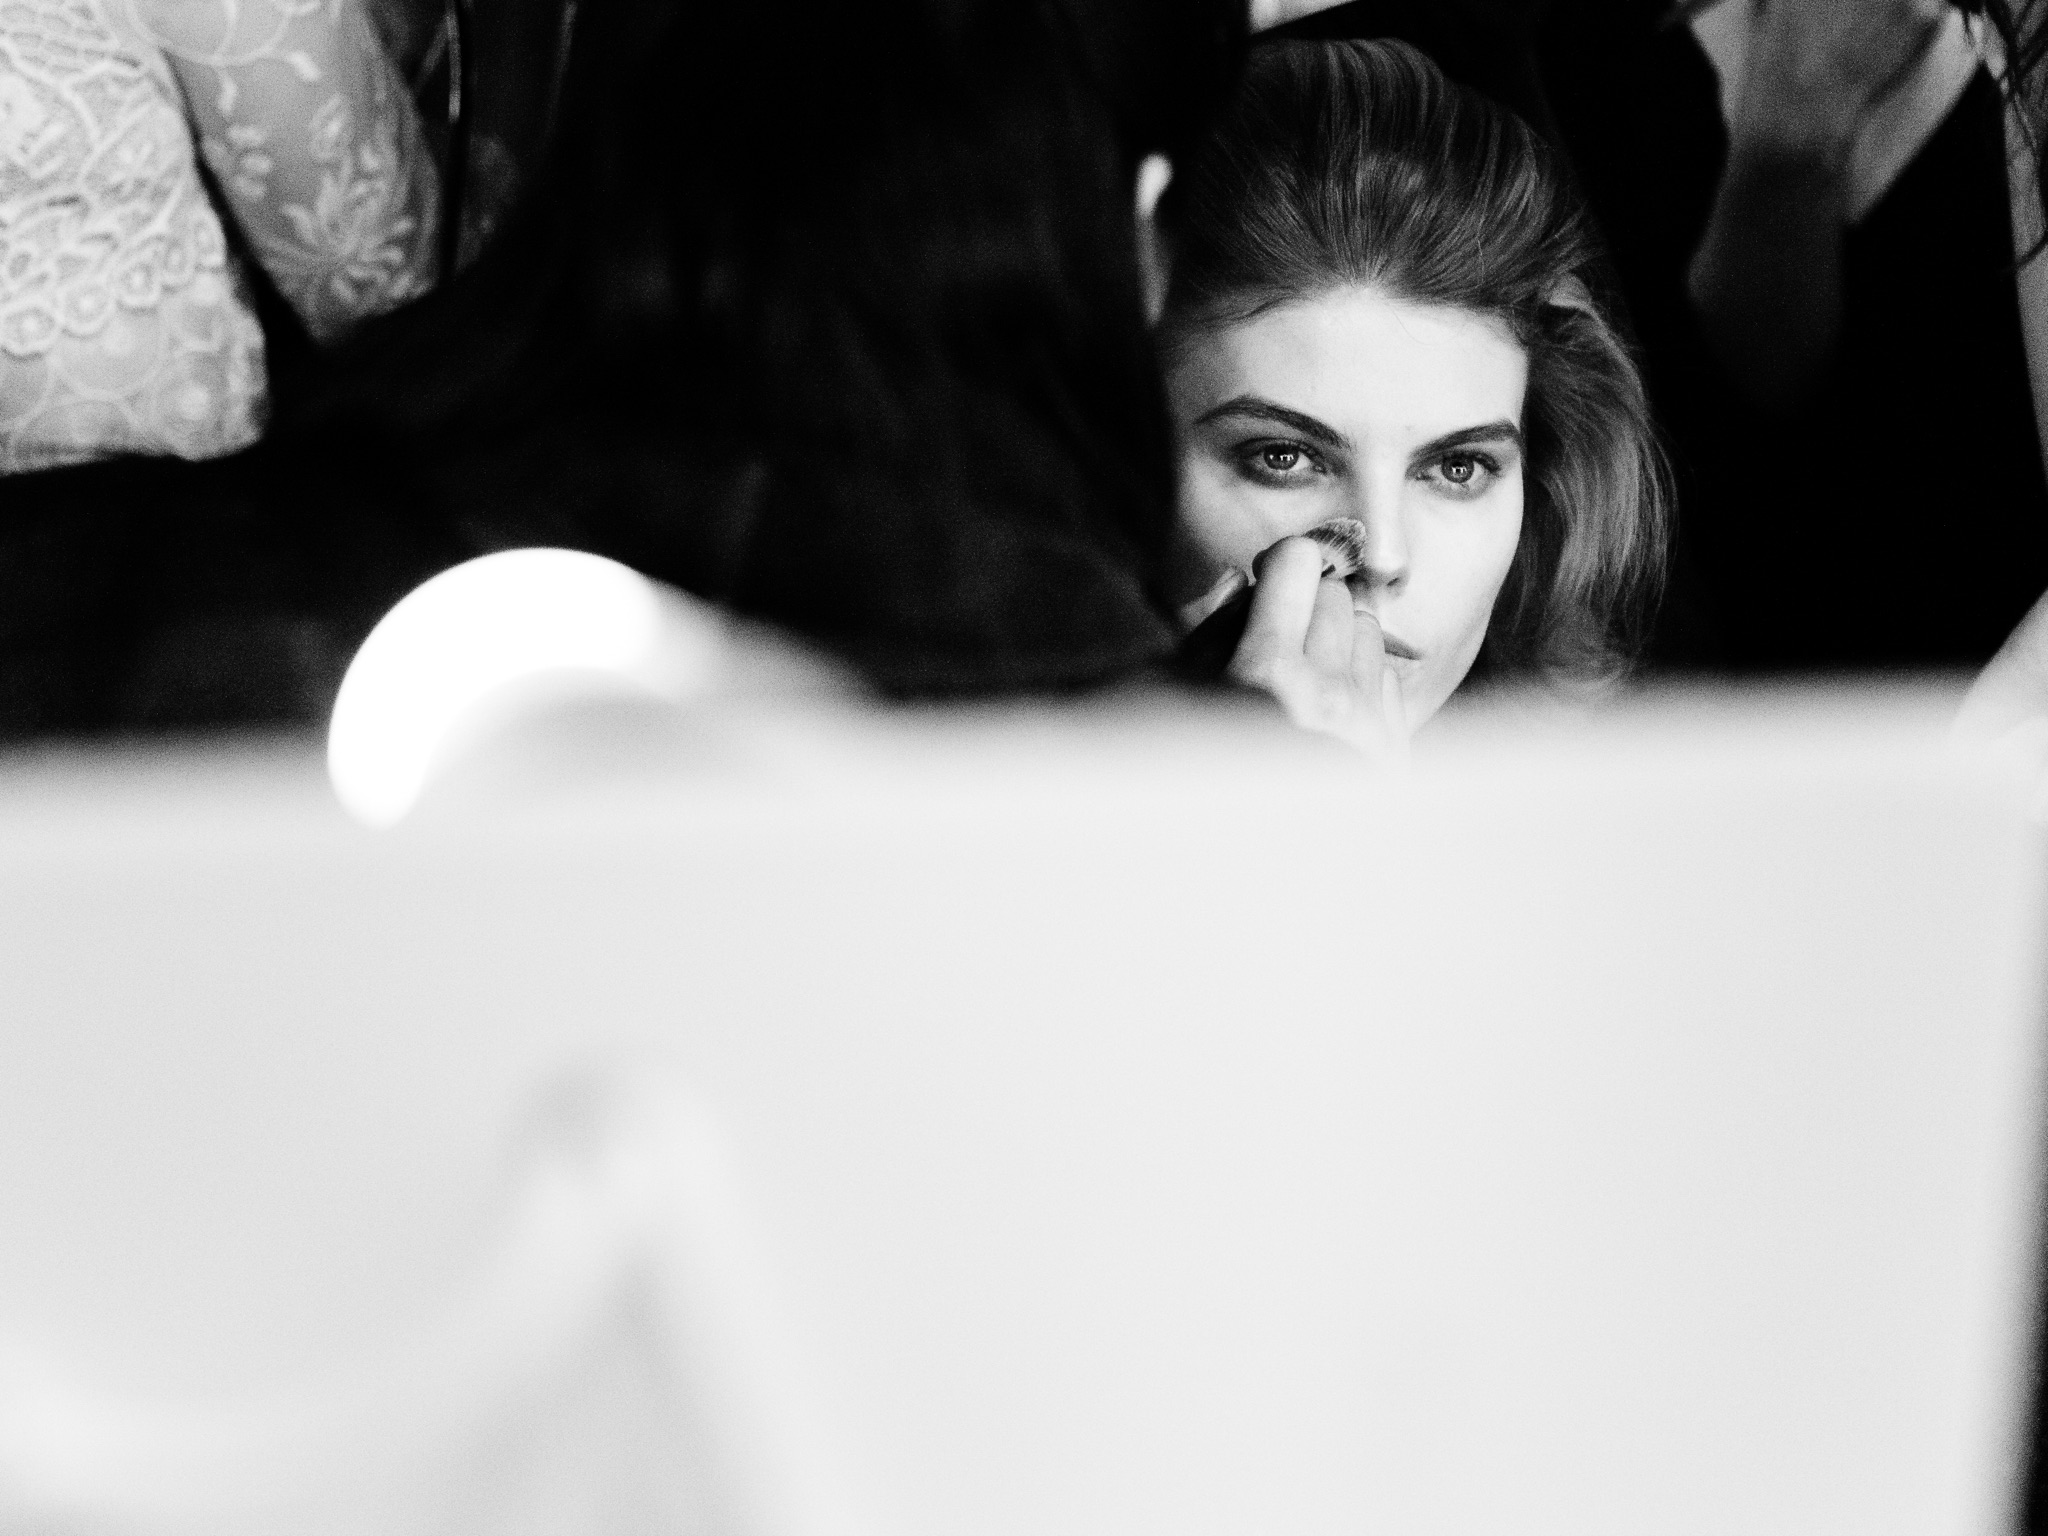 London Fashion Week LFW Runway Show Photography Photograph How to Model Walking Catwalk Youtube Video Guide Tutorial Backstage